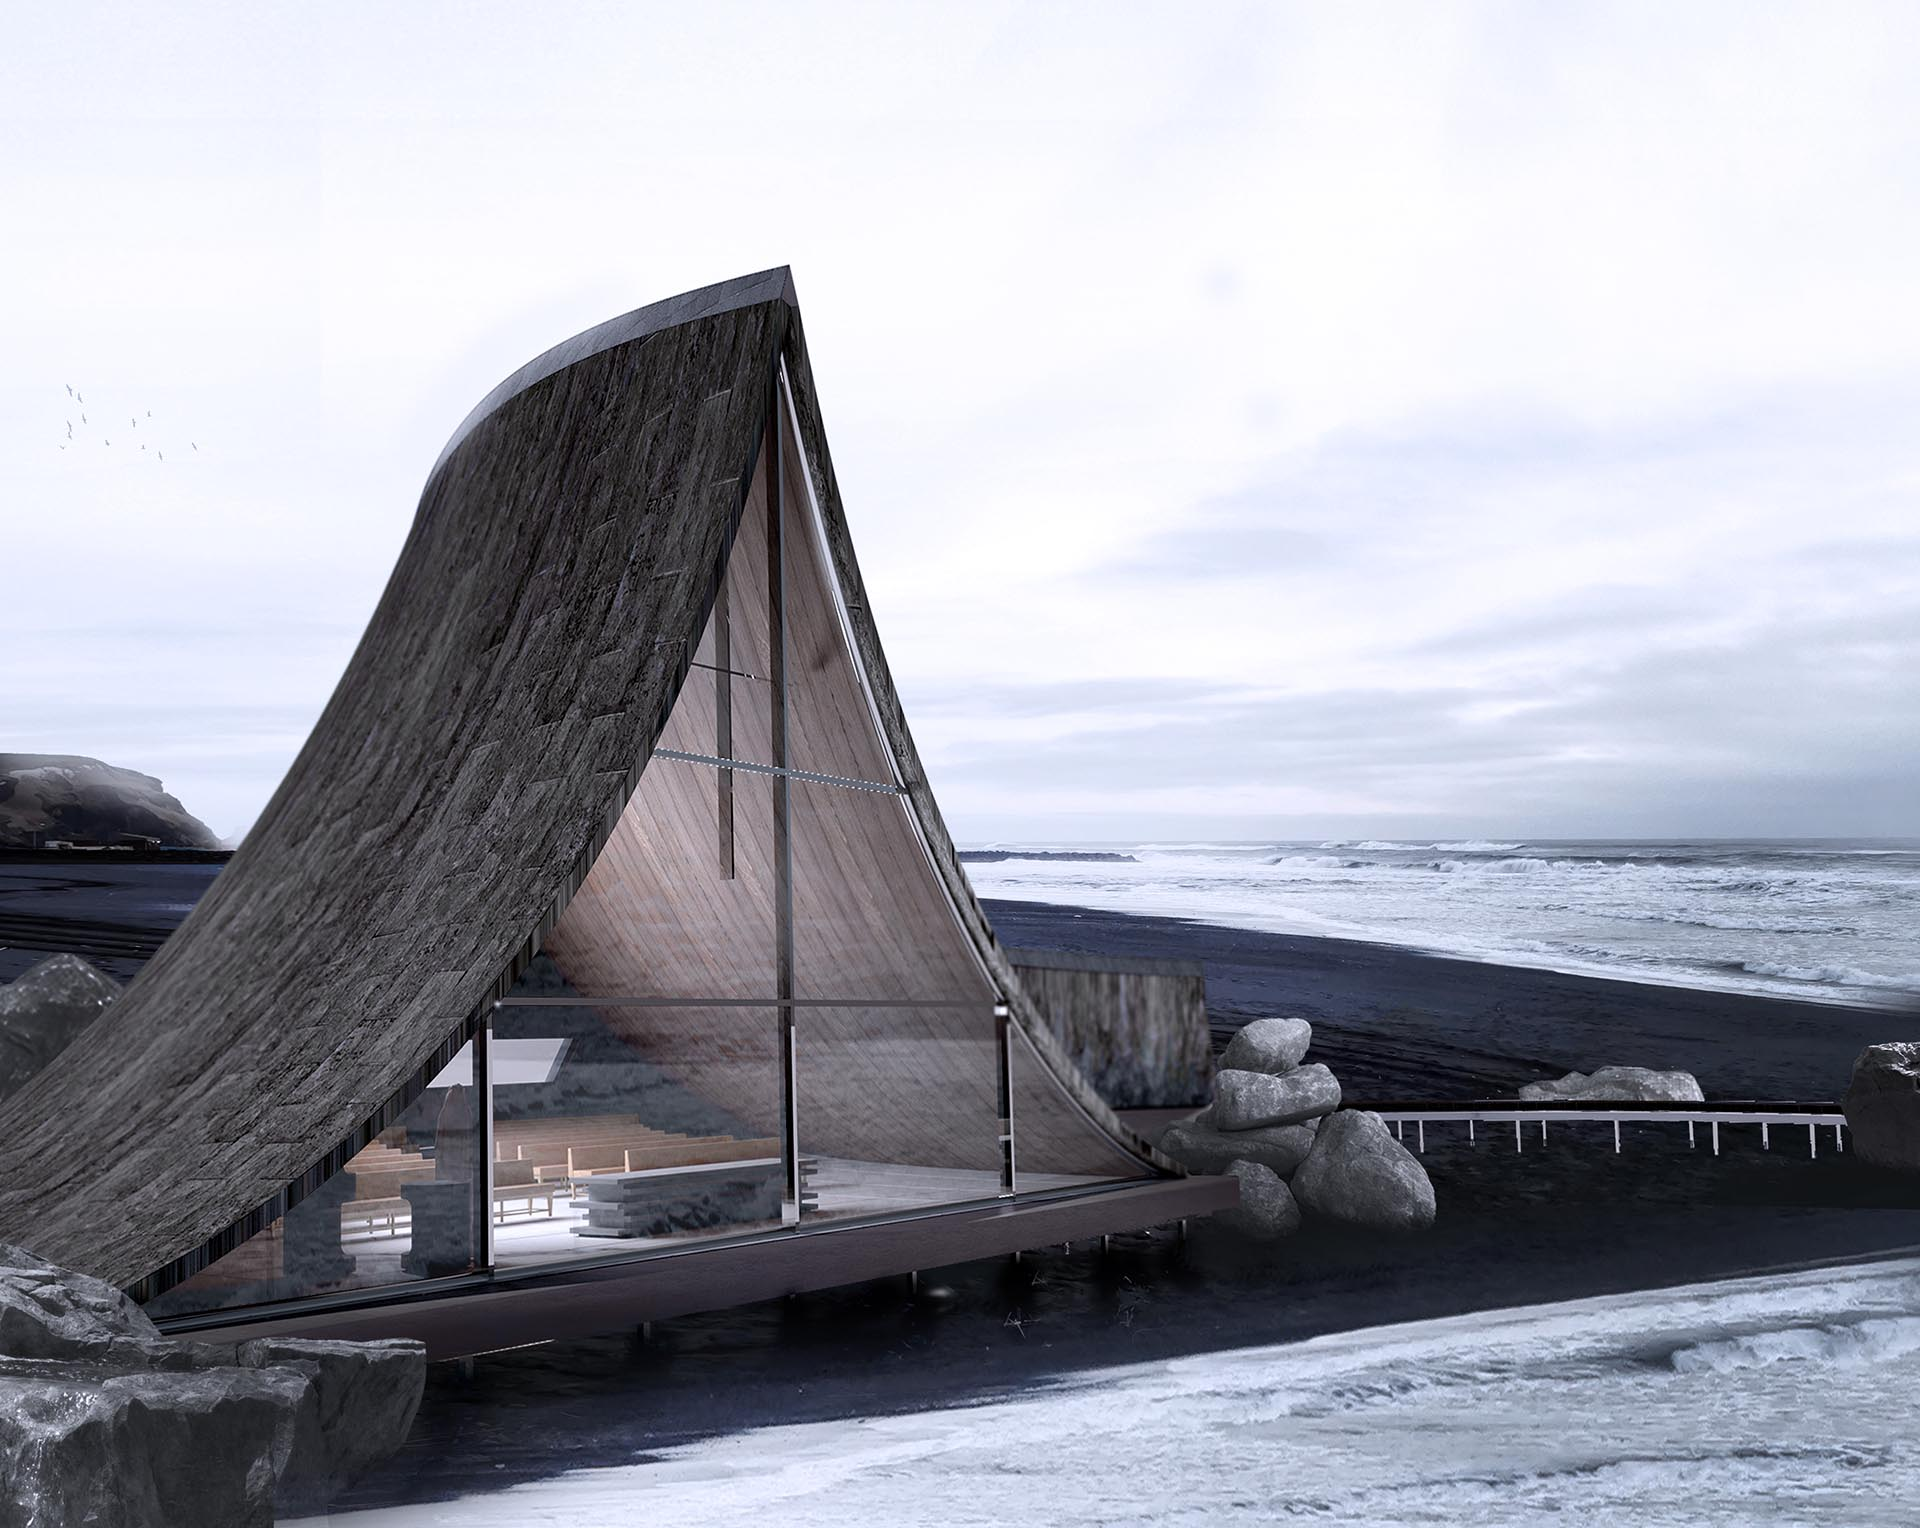 Coast Whale Chapel by Jinyu Zhang